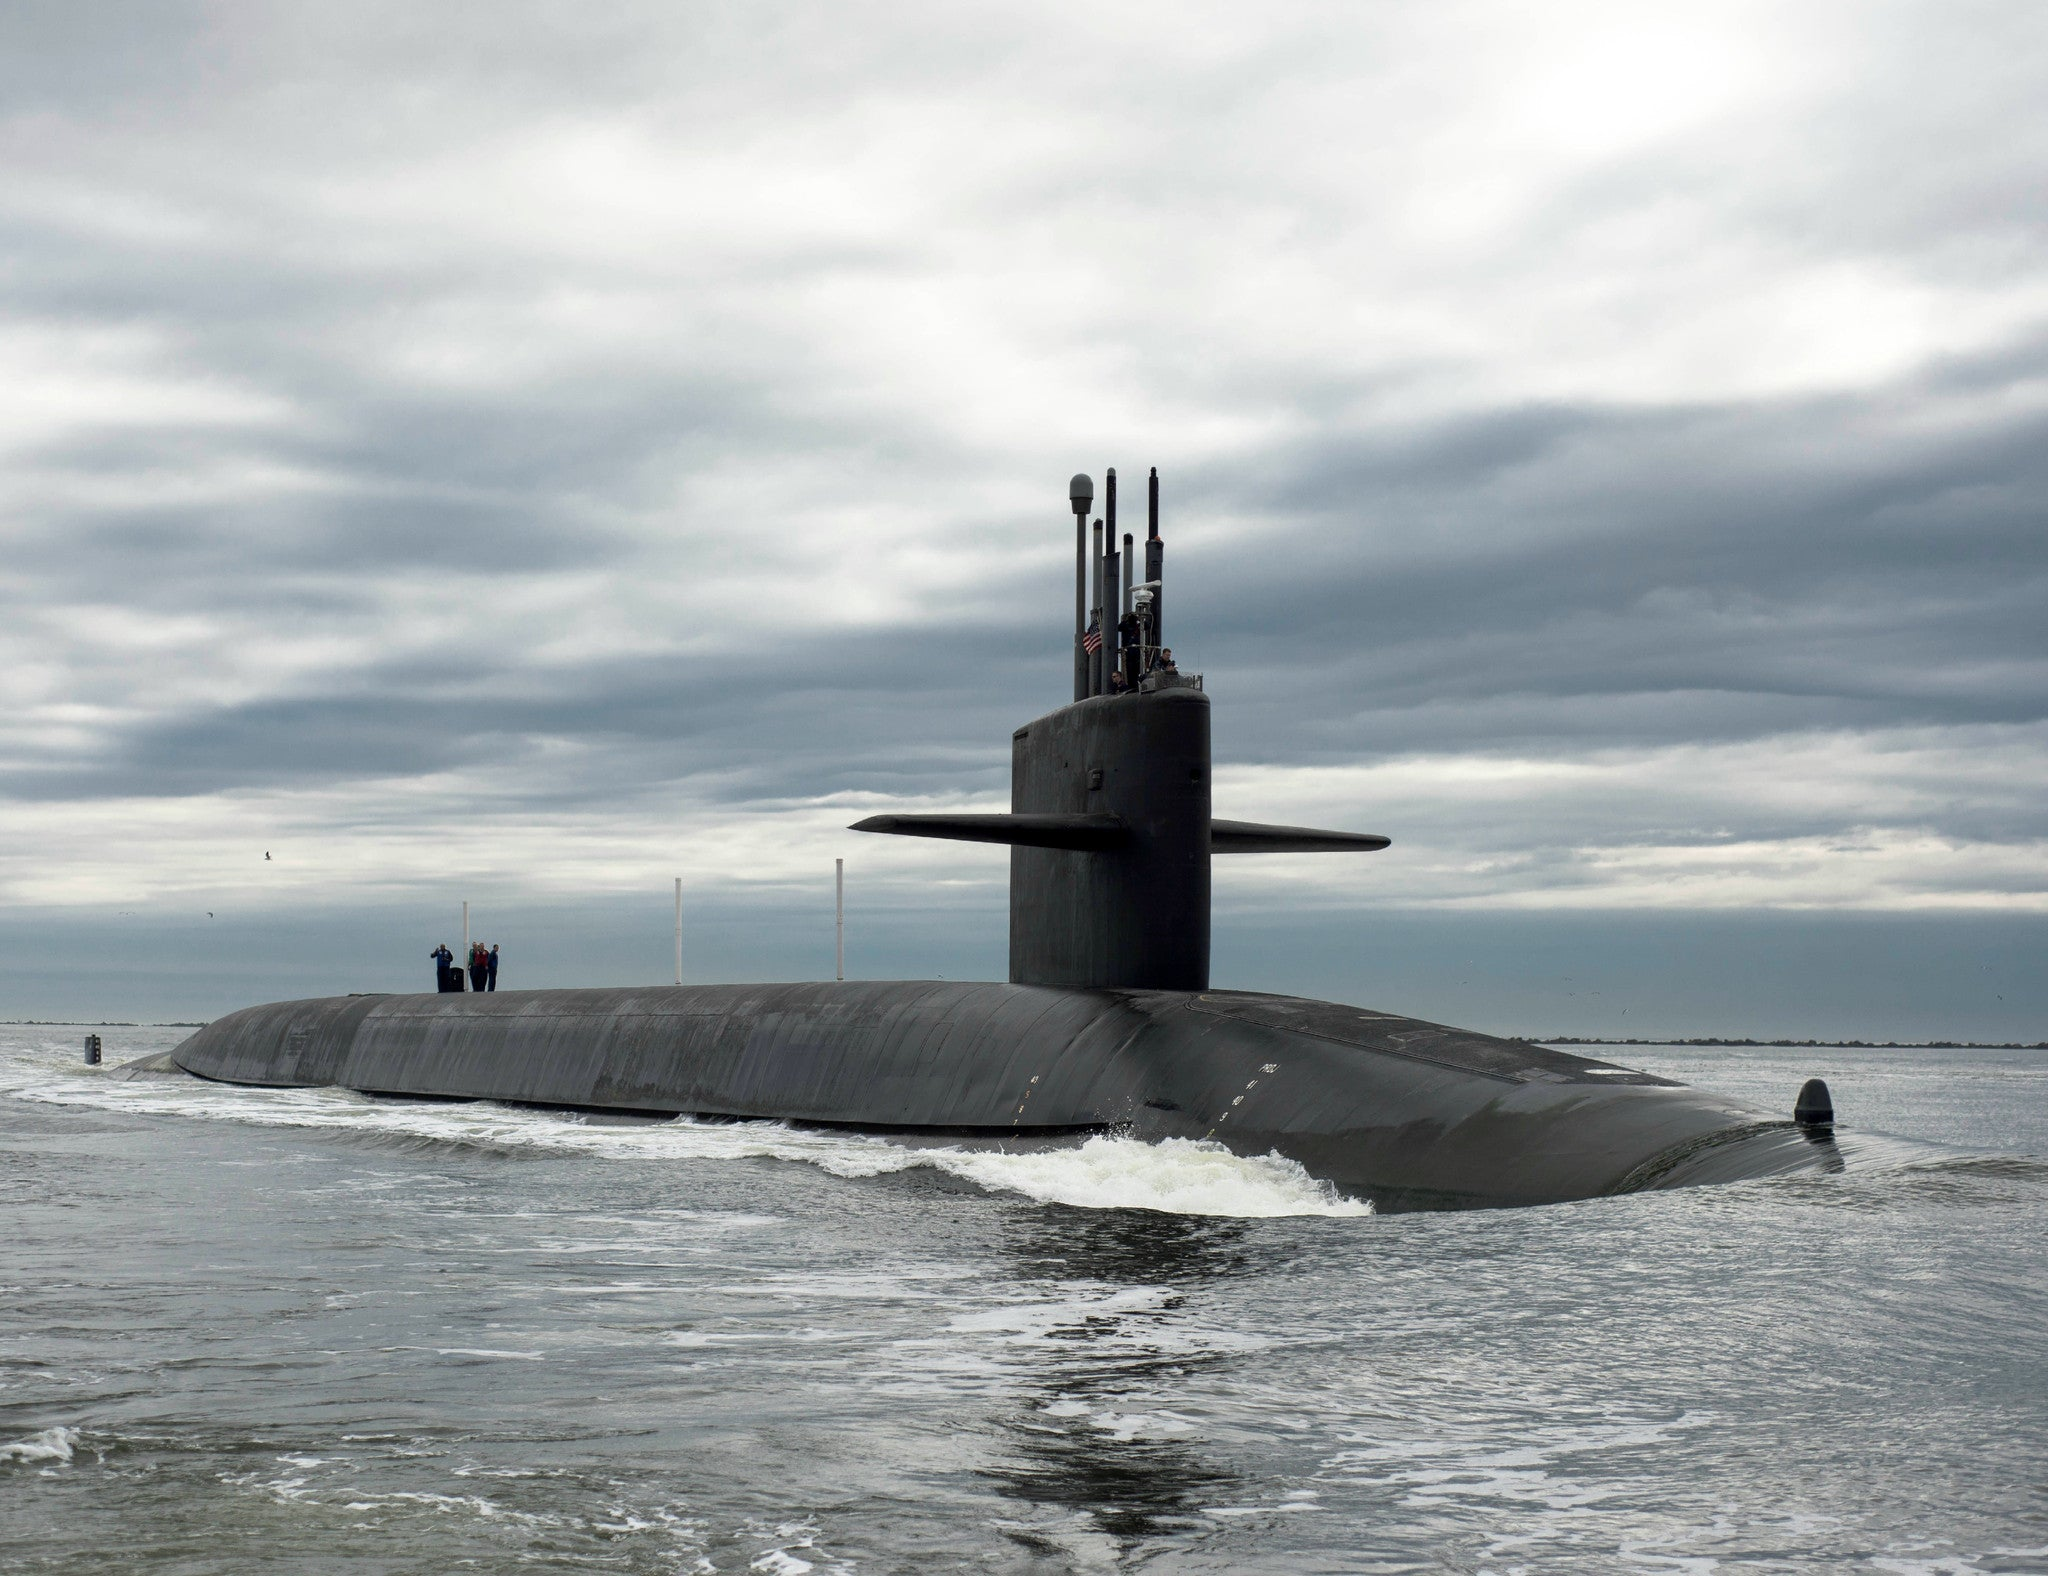 "Submarine SSBN-734 Atlantic Ocean February 6, 2013 - 8 x 10"" Photograph"